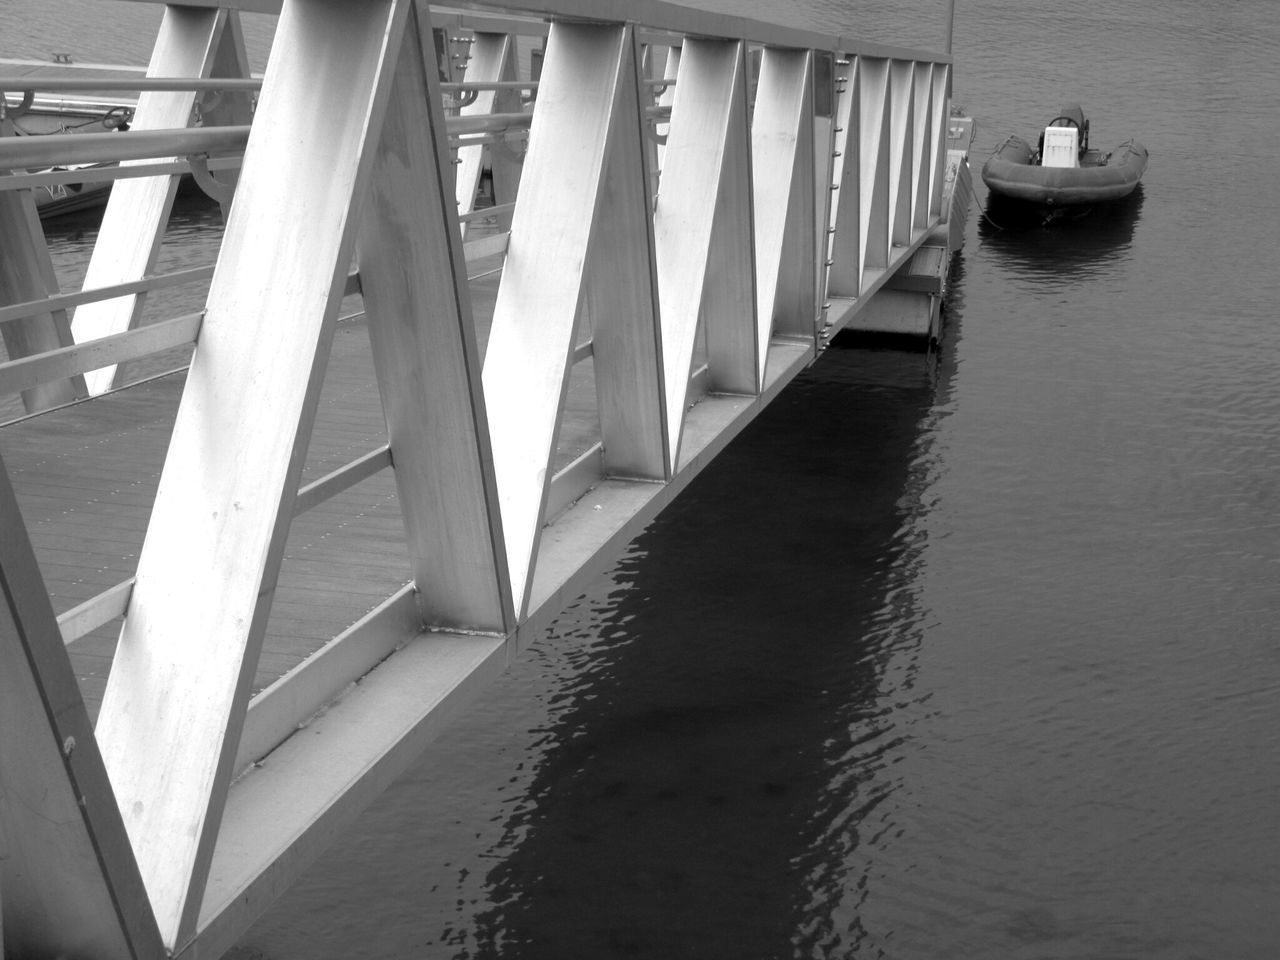 built structure, water, no people, day, nautical vessel, architecture, river, outdoors, transportation, nature